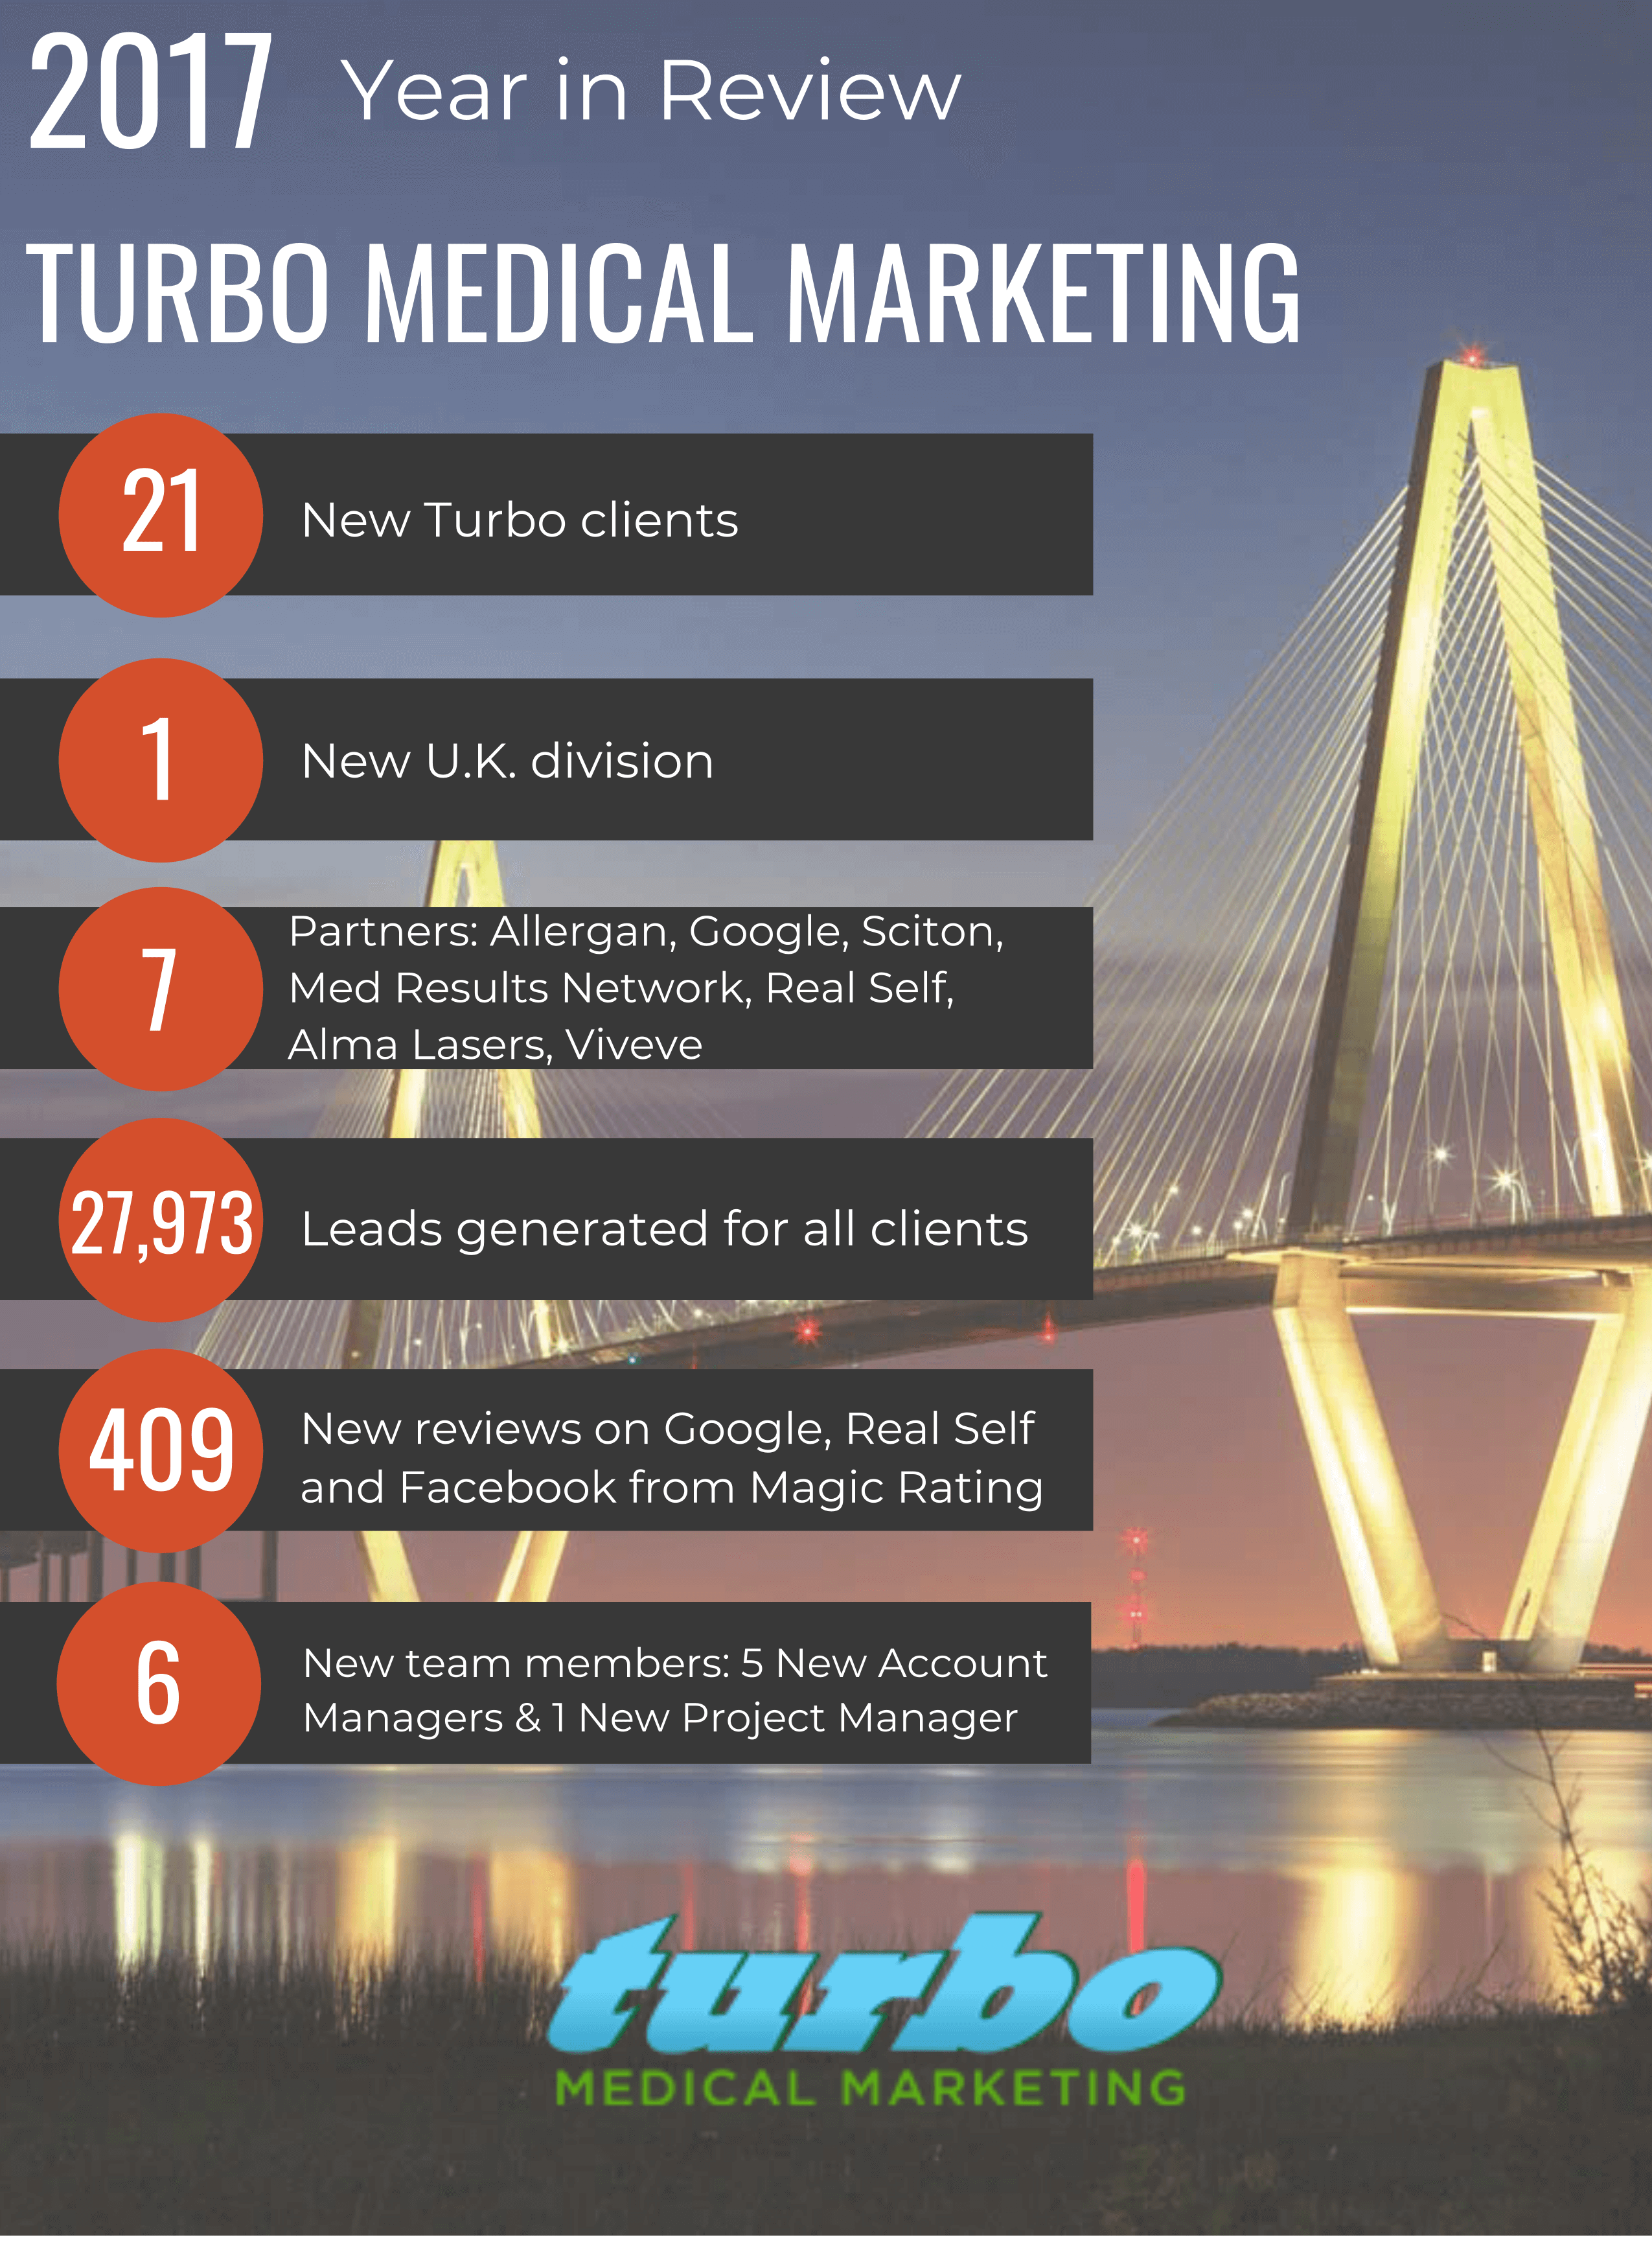 2017 Year in Review: Turbo Medical Marketing